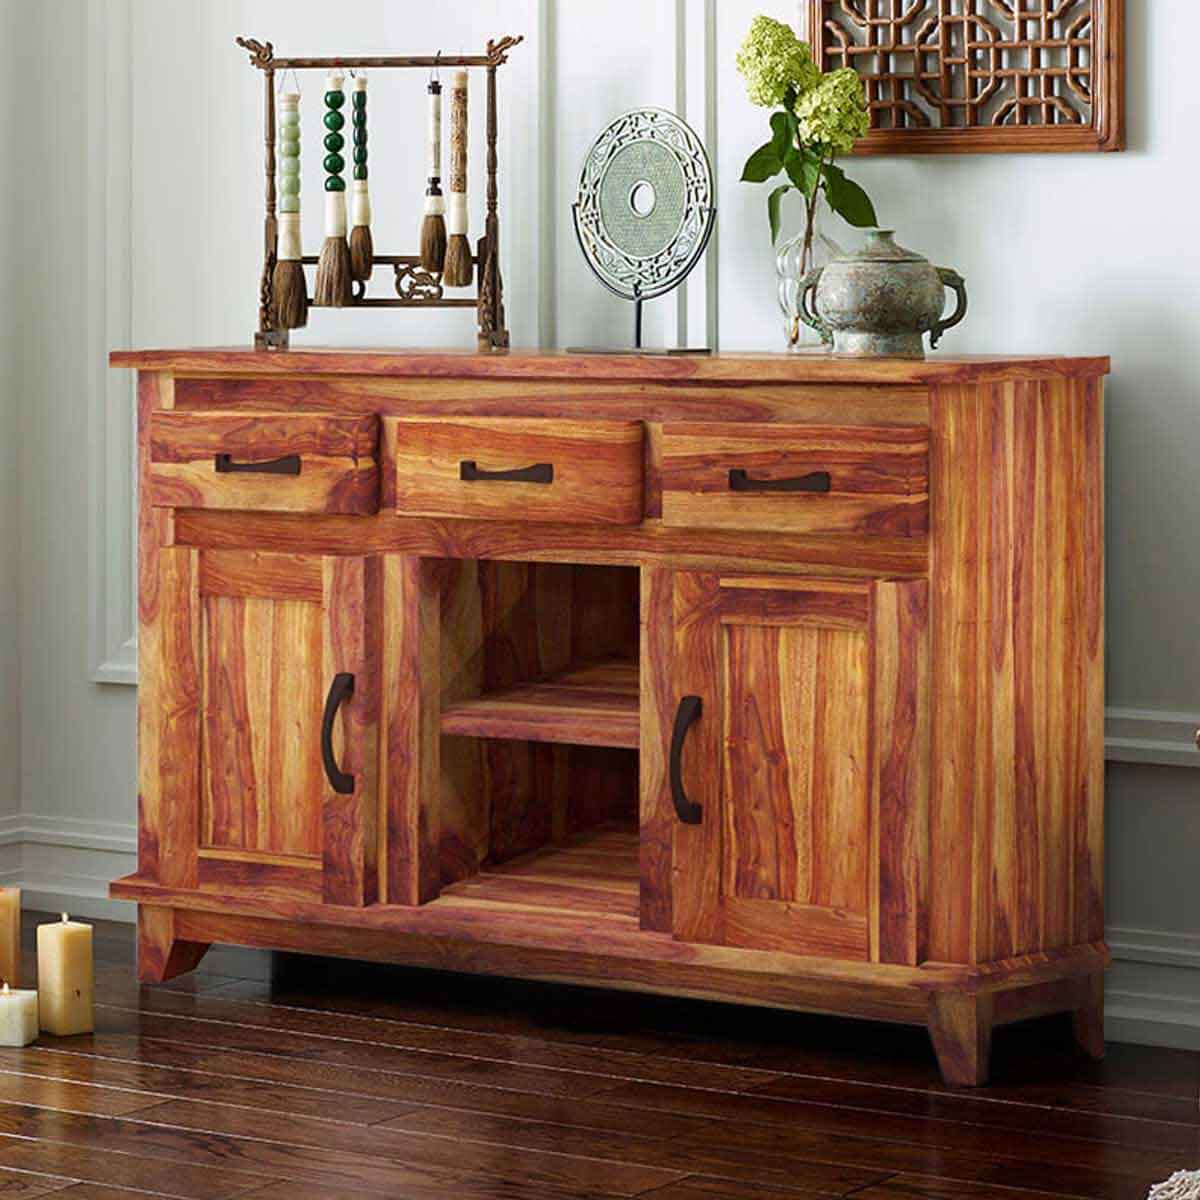 Sierra nevada modern rustic solid wood drawer sideboard